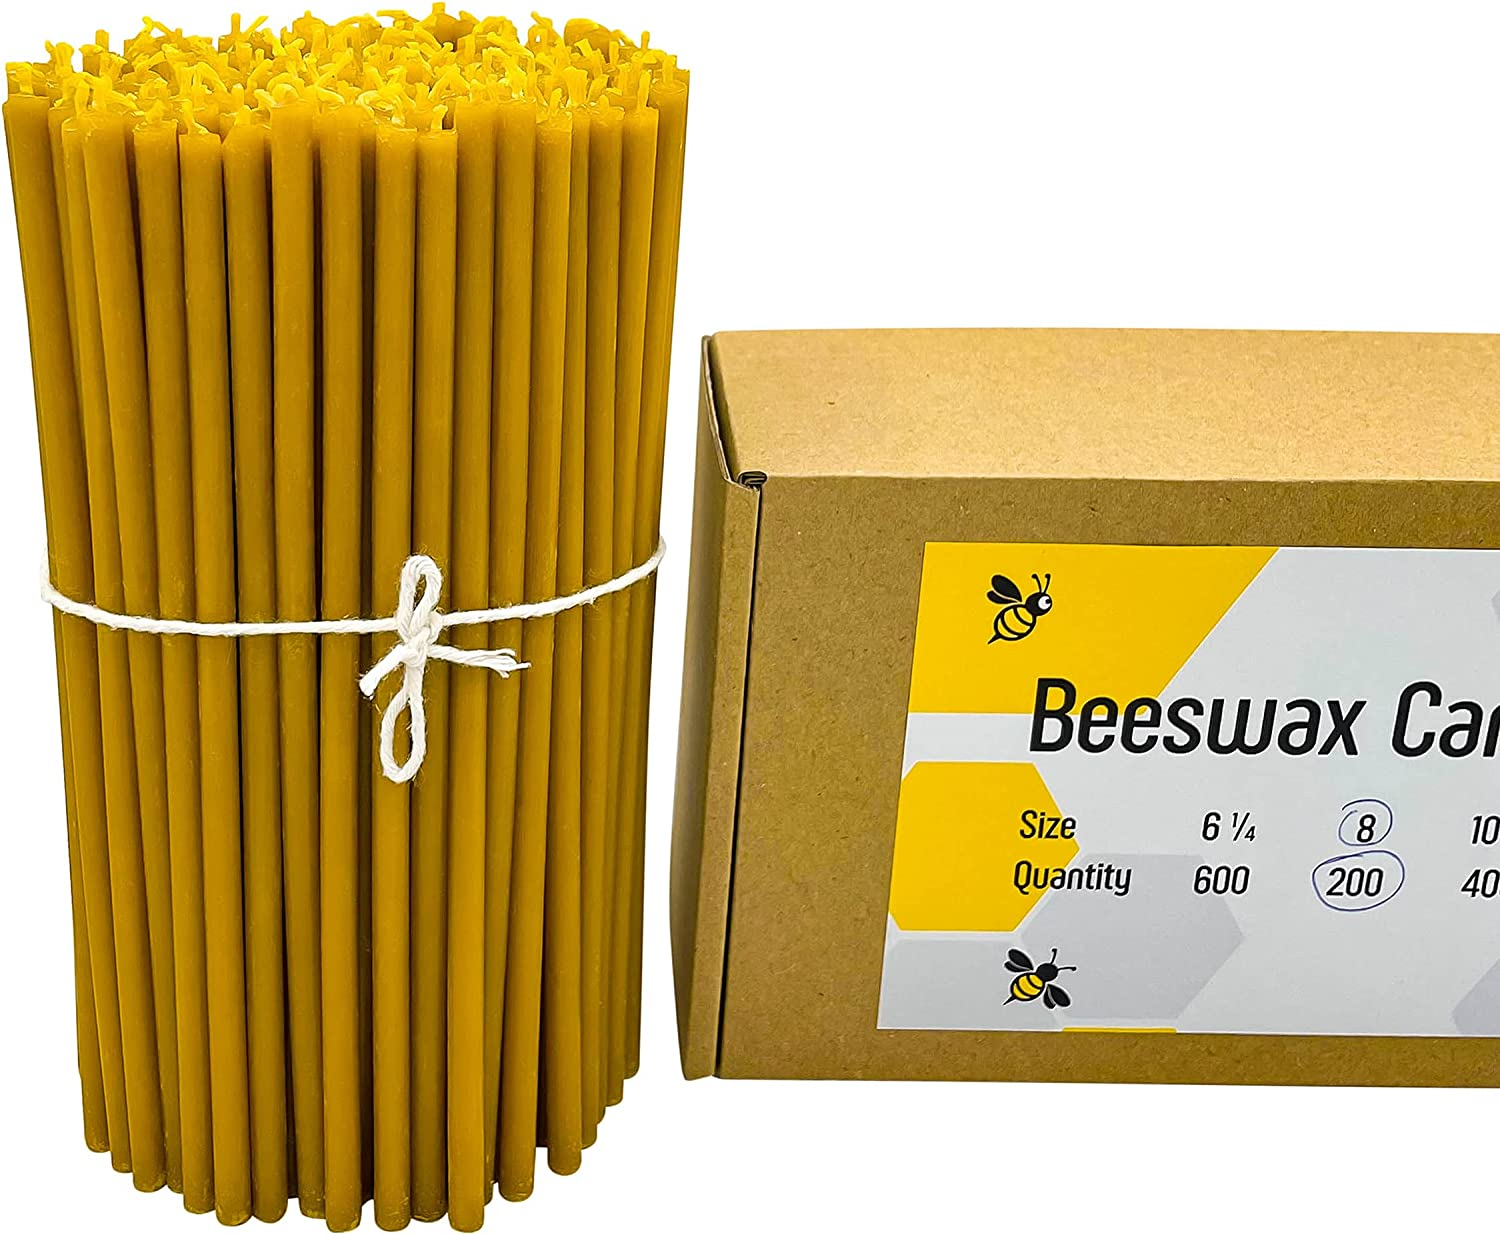 2021 autumn and winter new 100% Pure Beeswax Taper Candles Scent Honey - Décor Natural Dealing full price reduction